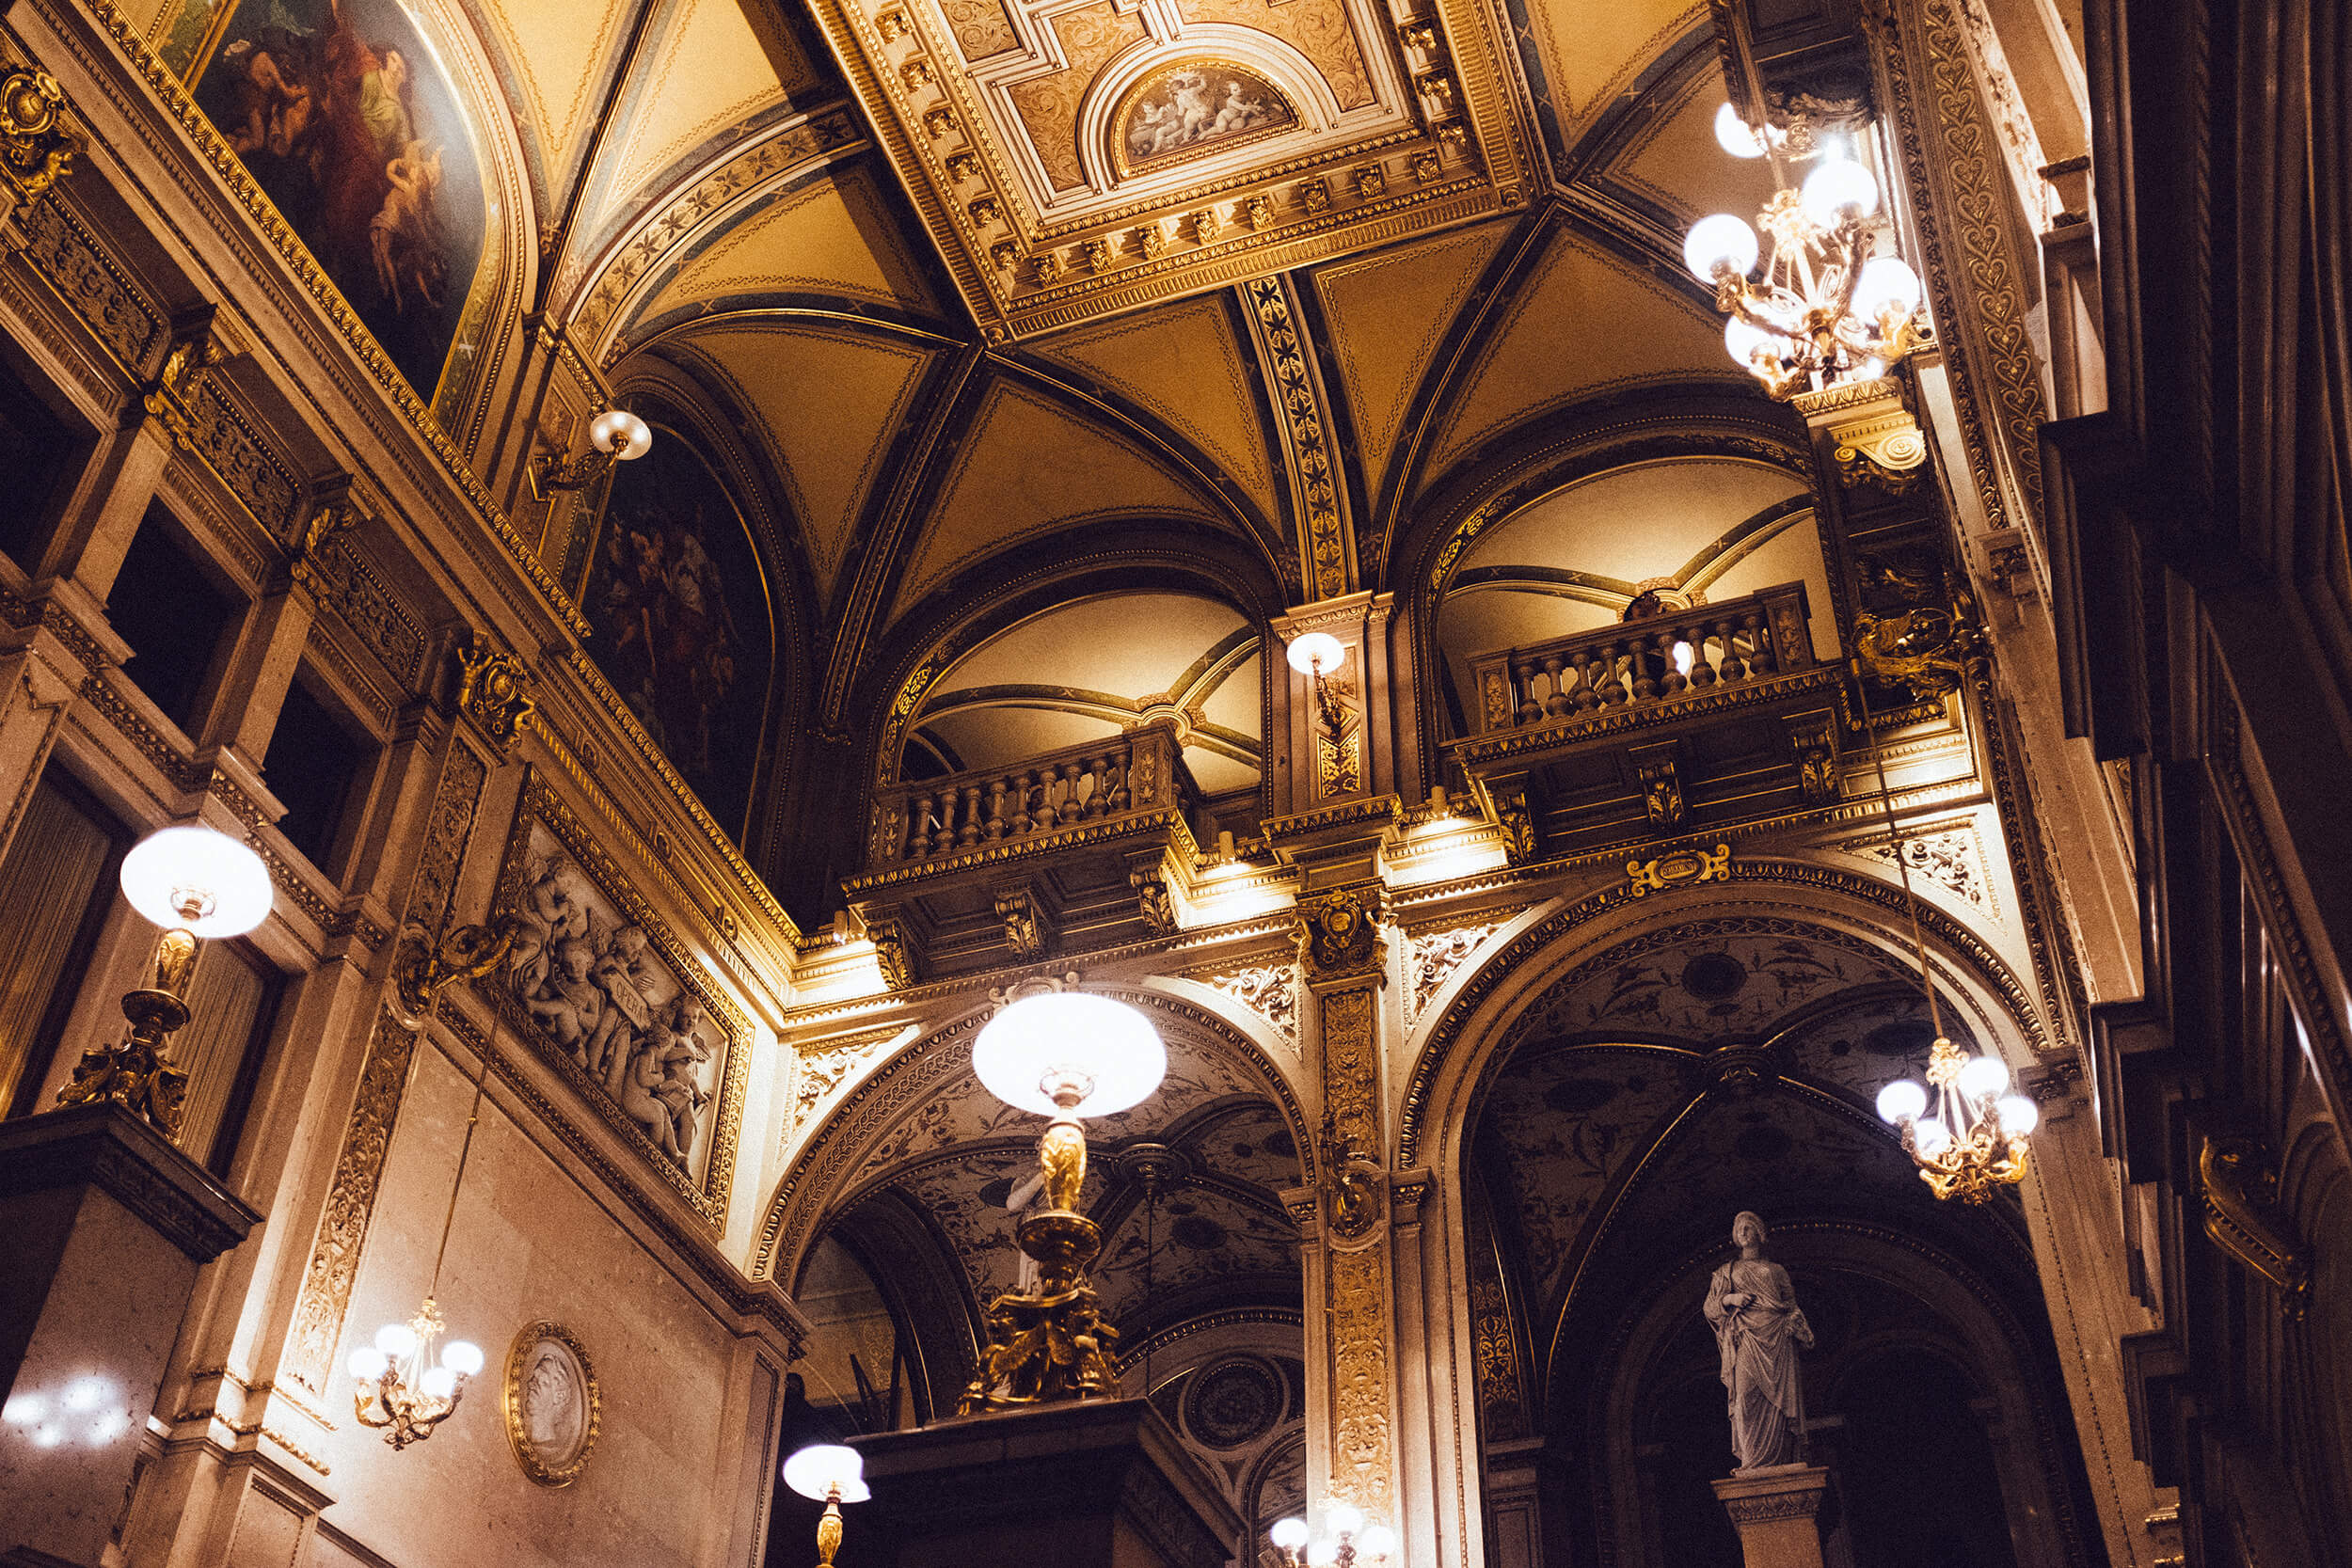 The majestic and legendary Vienna State Opera (a.k.a.  Wiener Staatsoper )